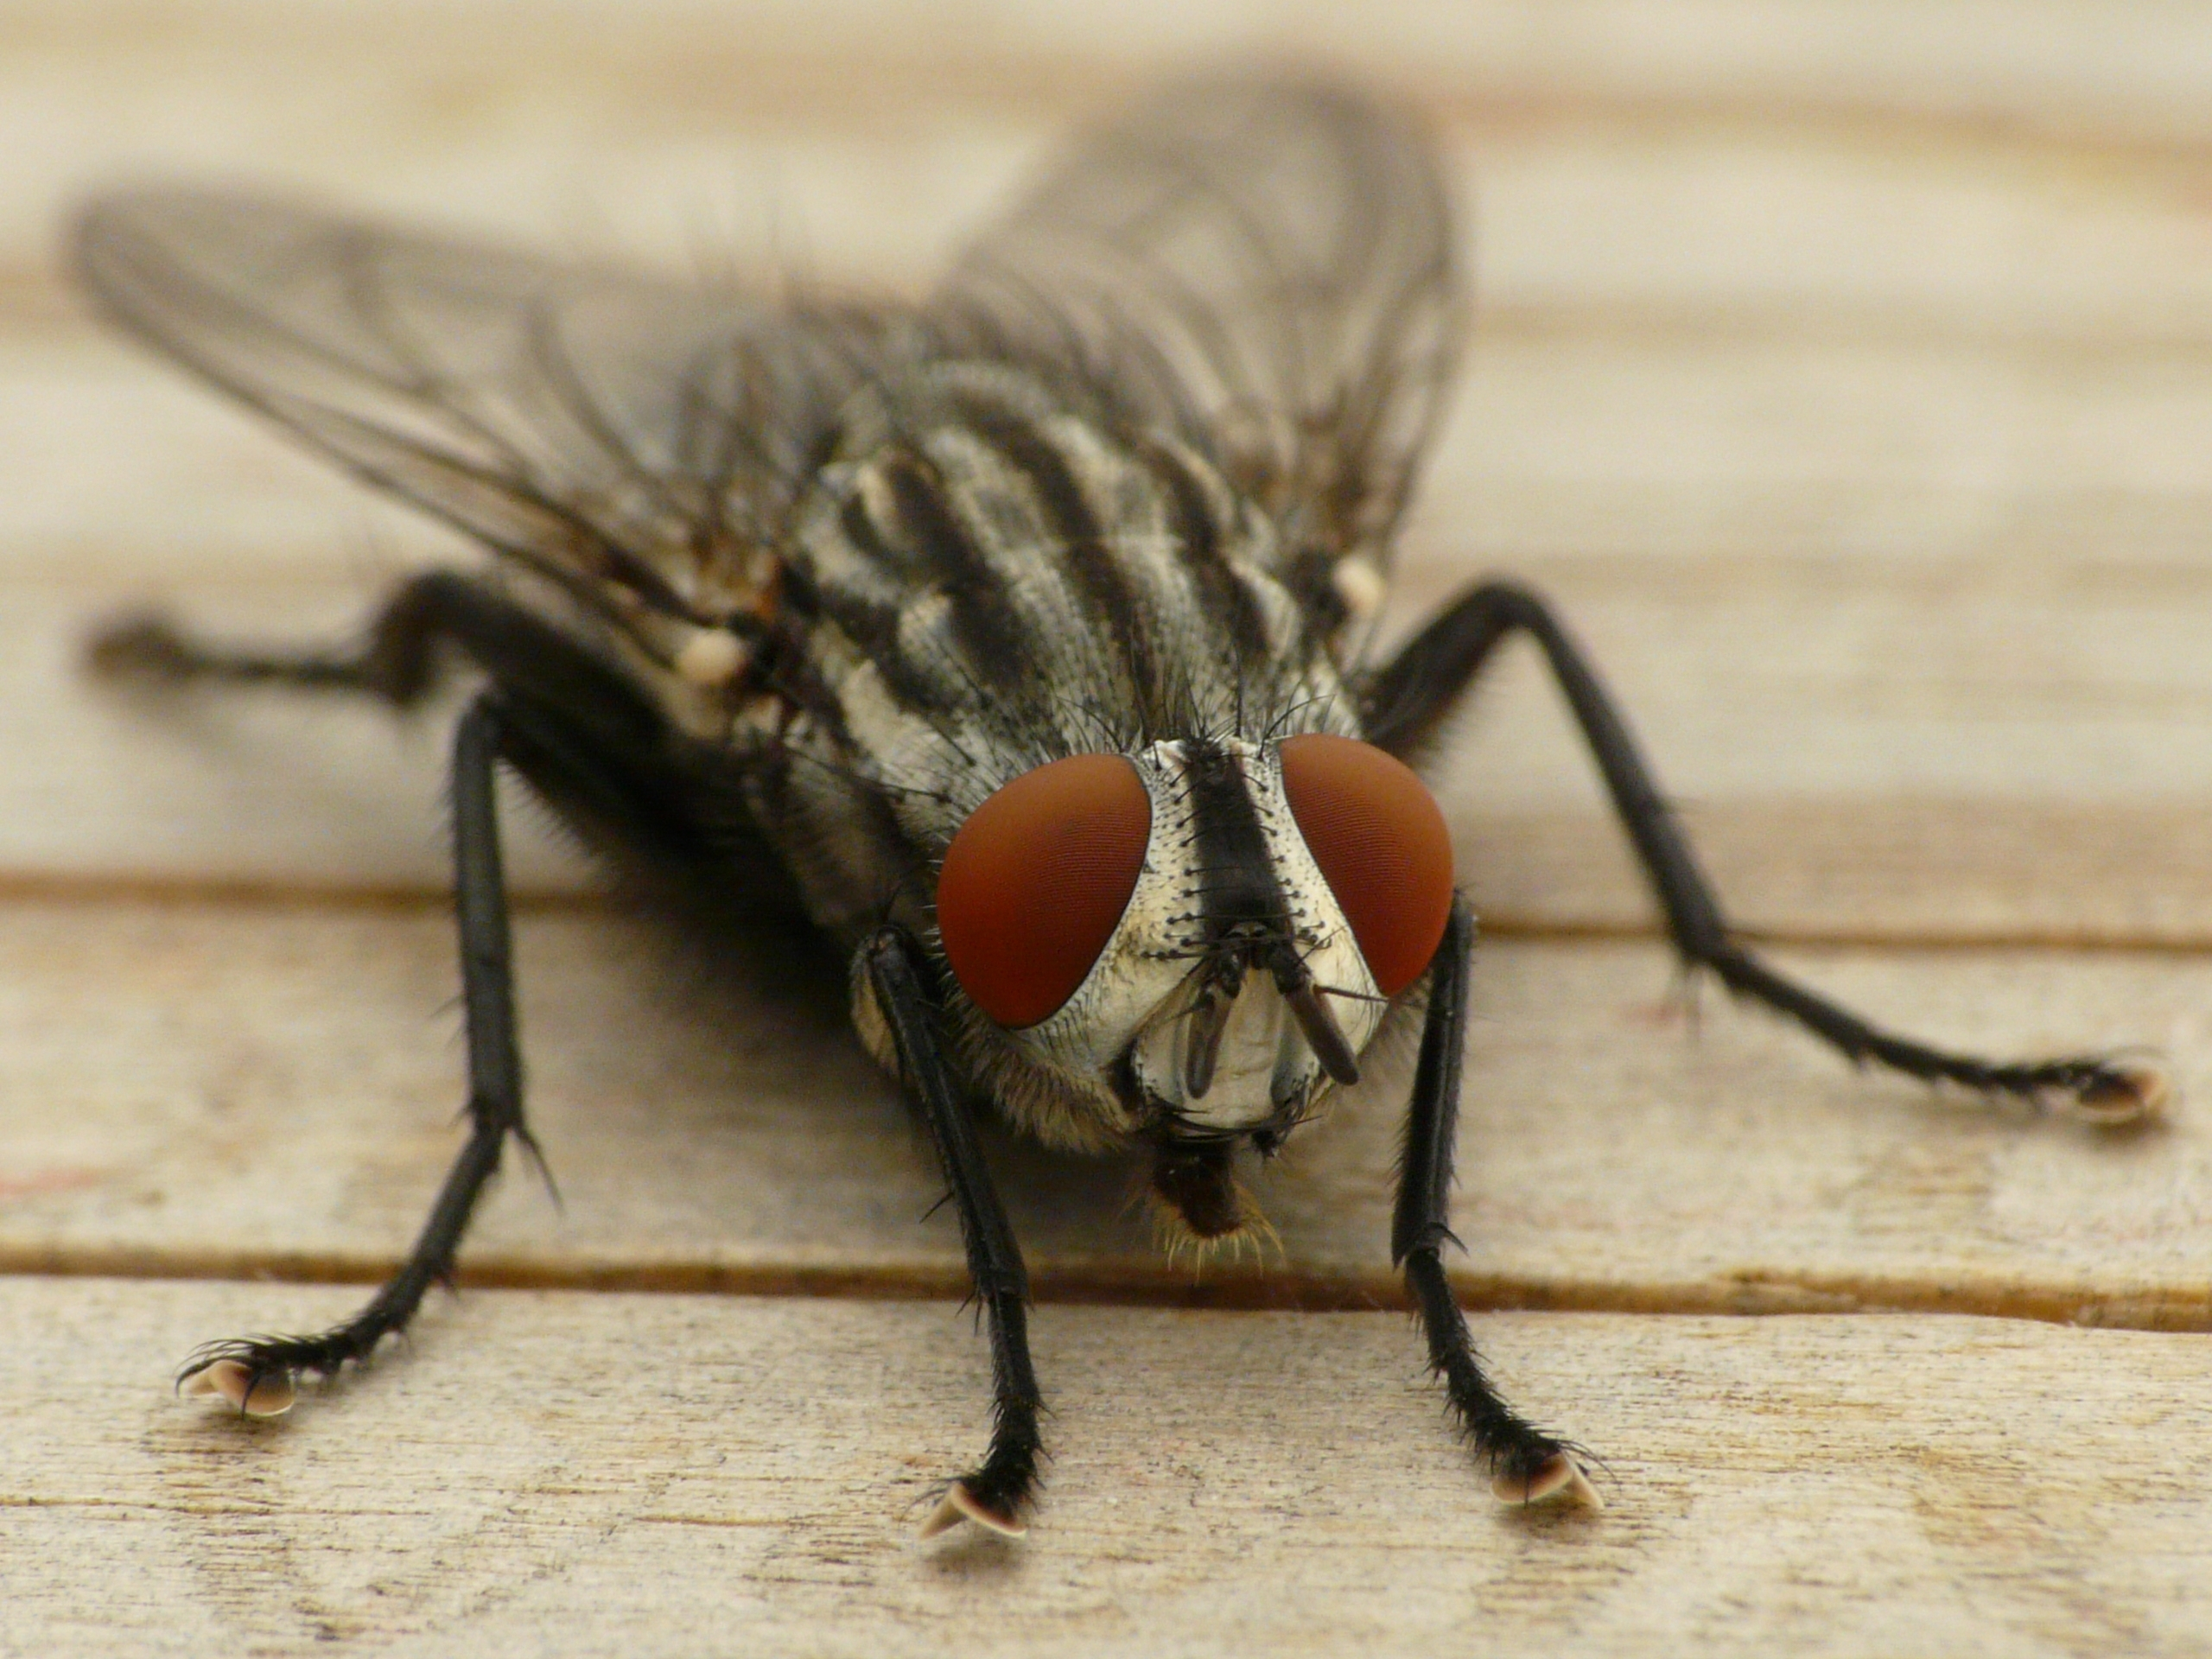 2560x1920 Wallpaper fly, eye, insect, wings, close-up